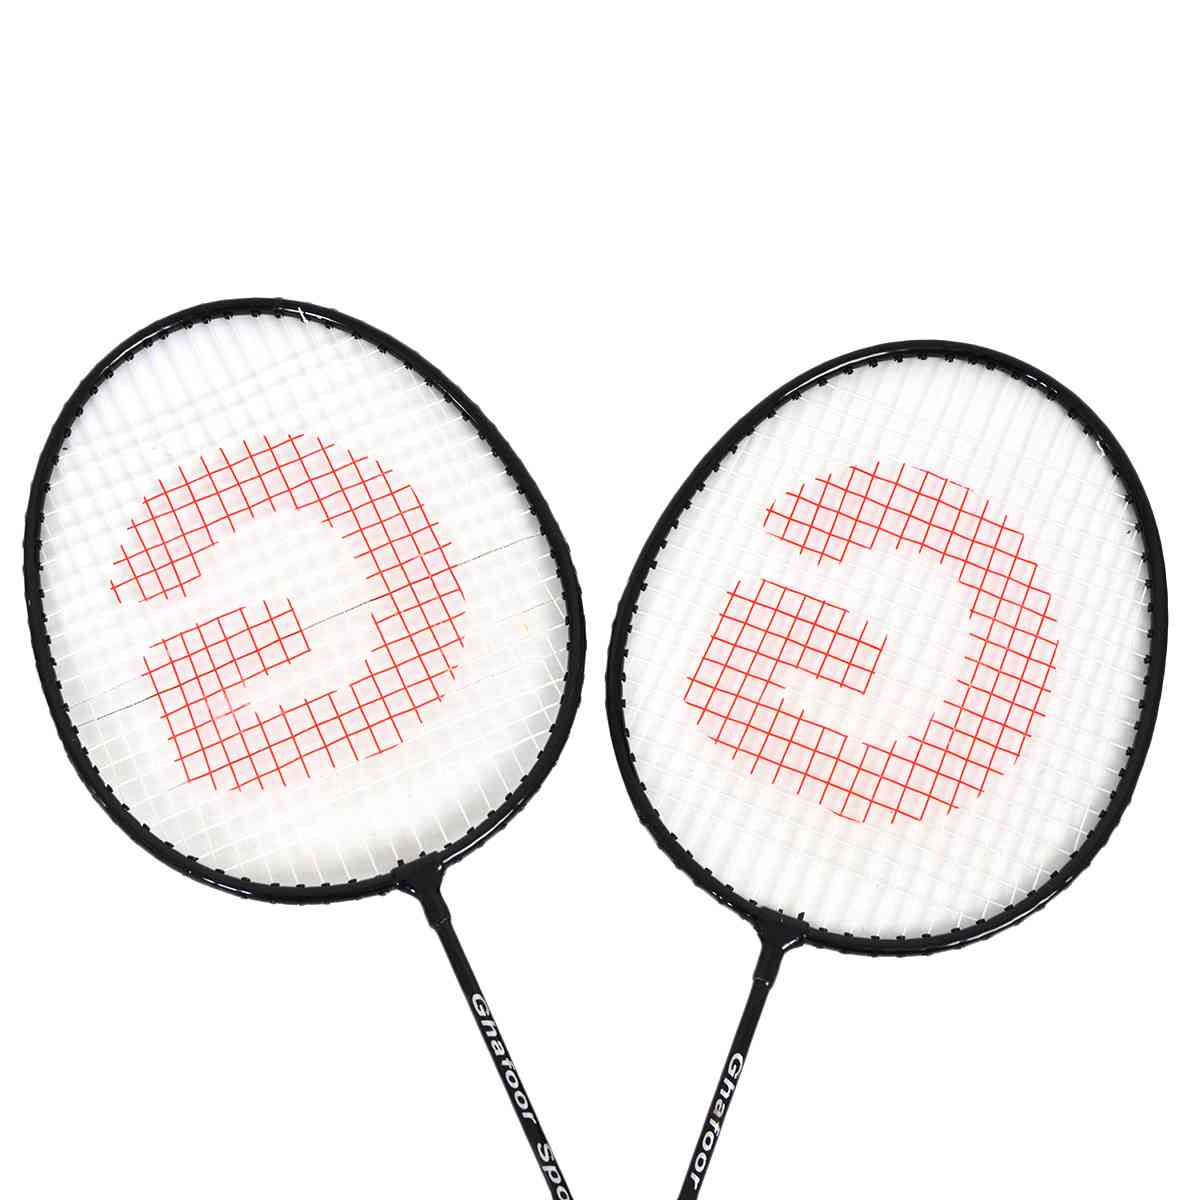 2 Pcs Good Quality Badminton Rackets with Bag (With Joint ...